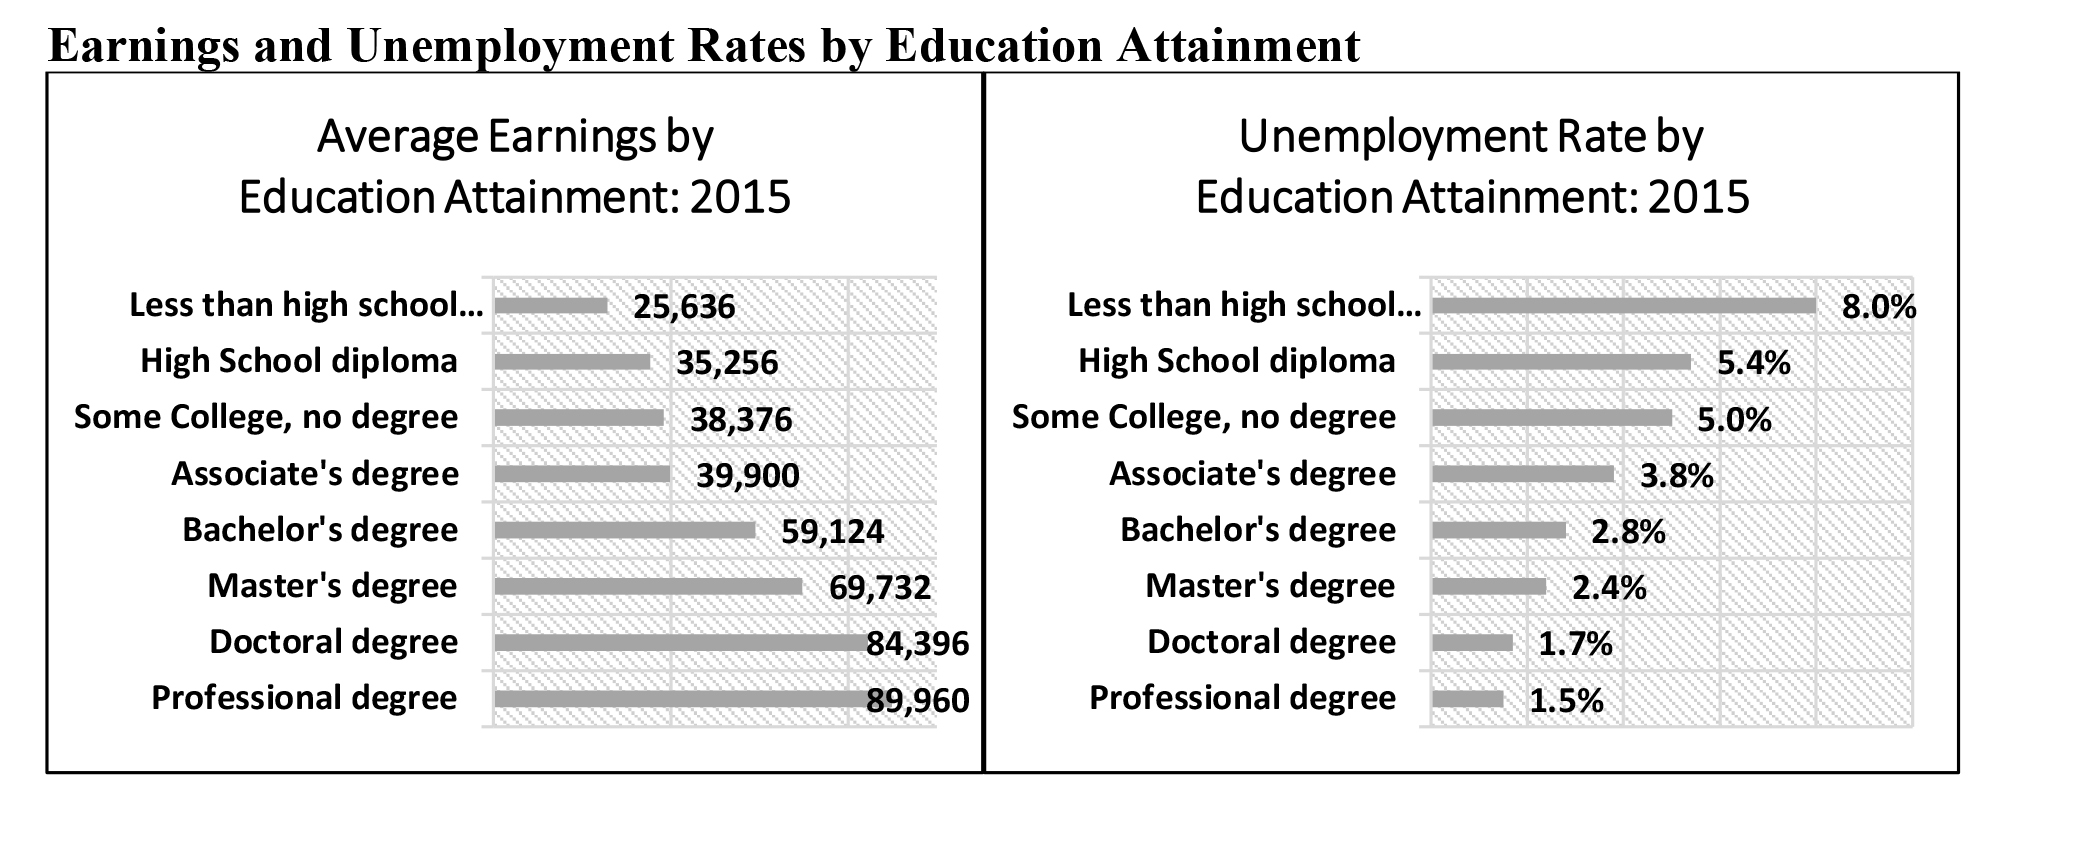 Earnings and Unemployment Rates by Education Attainment.jpg